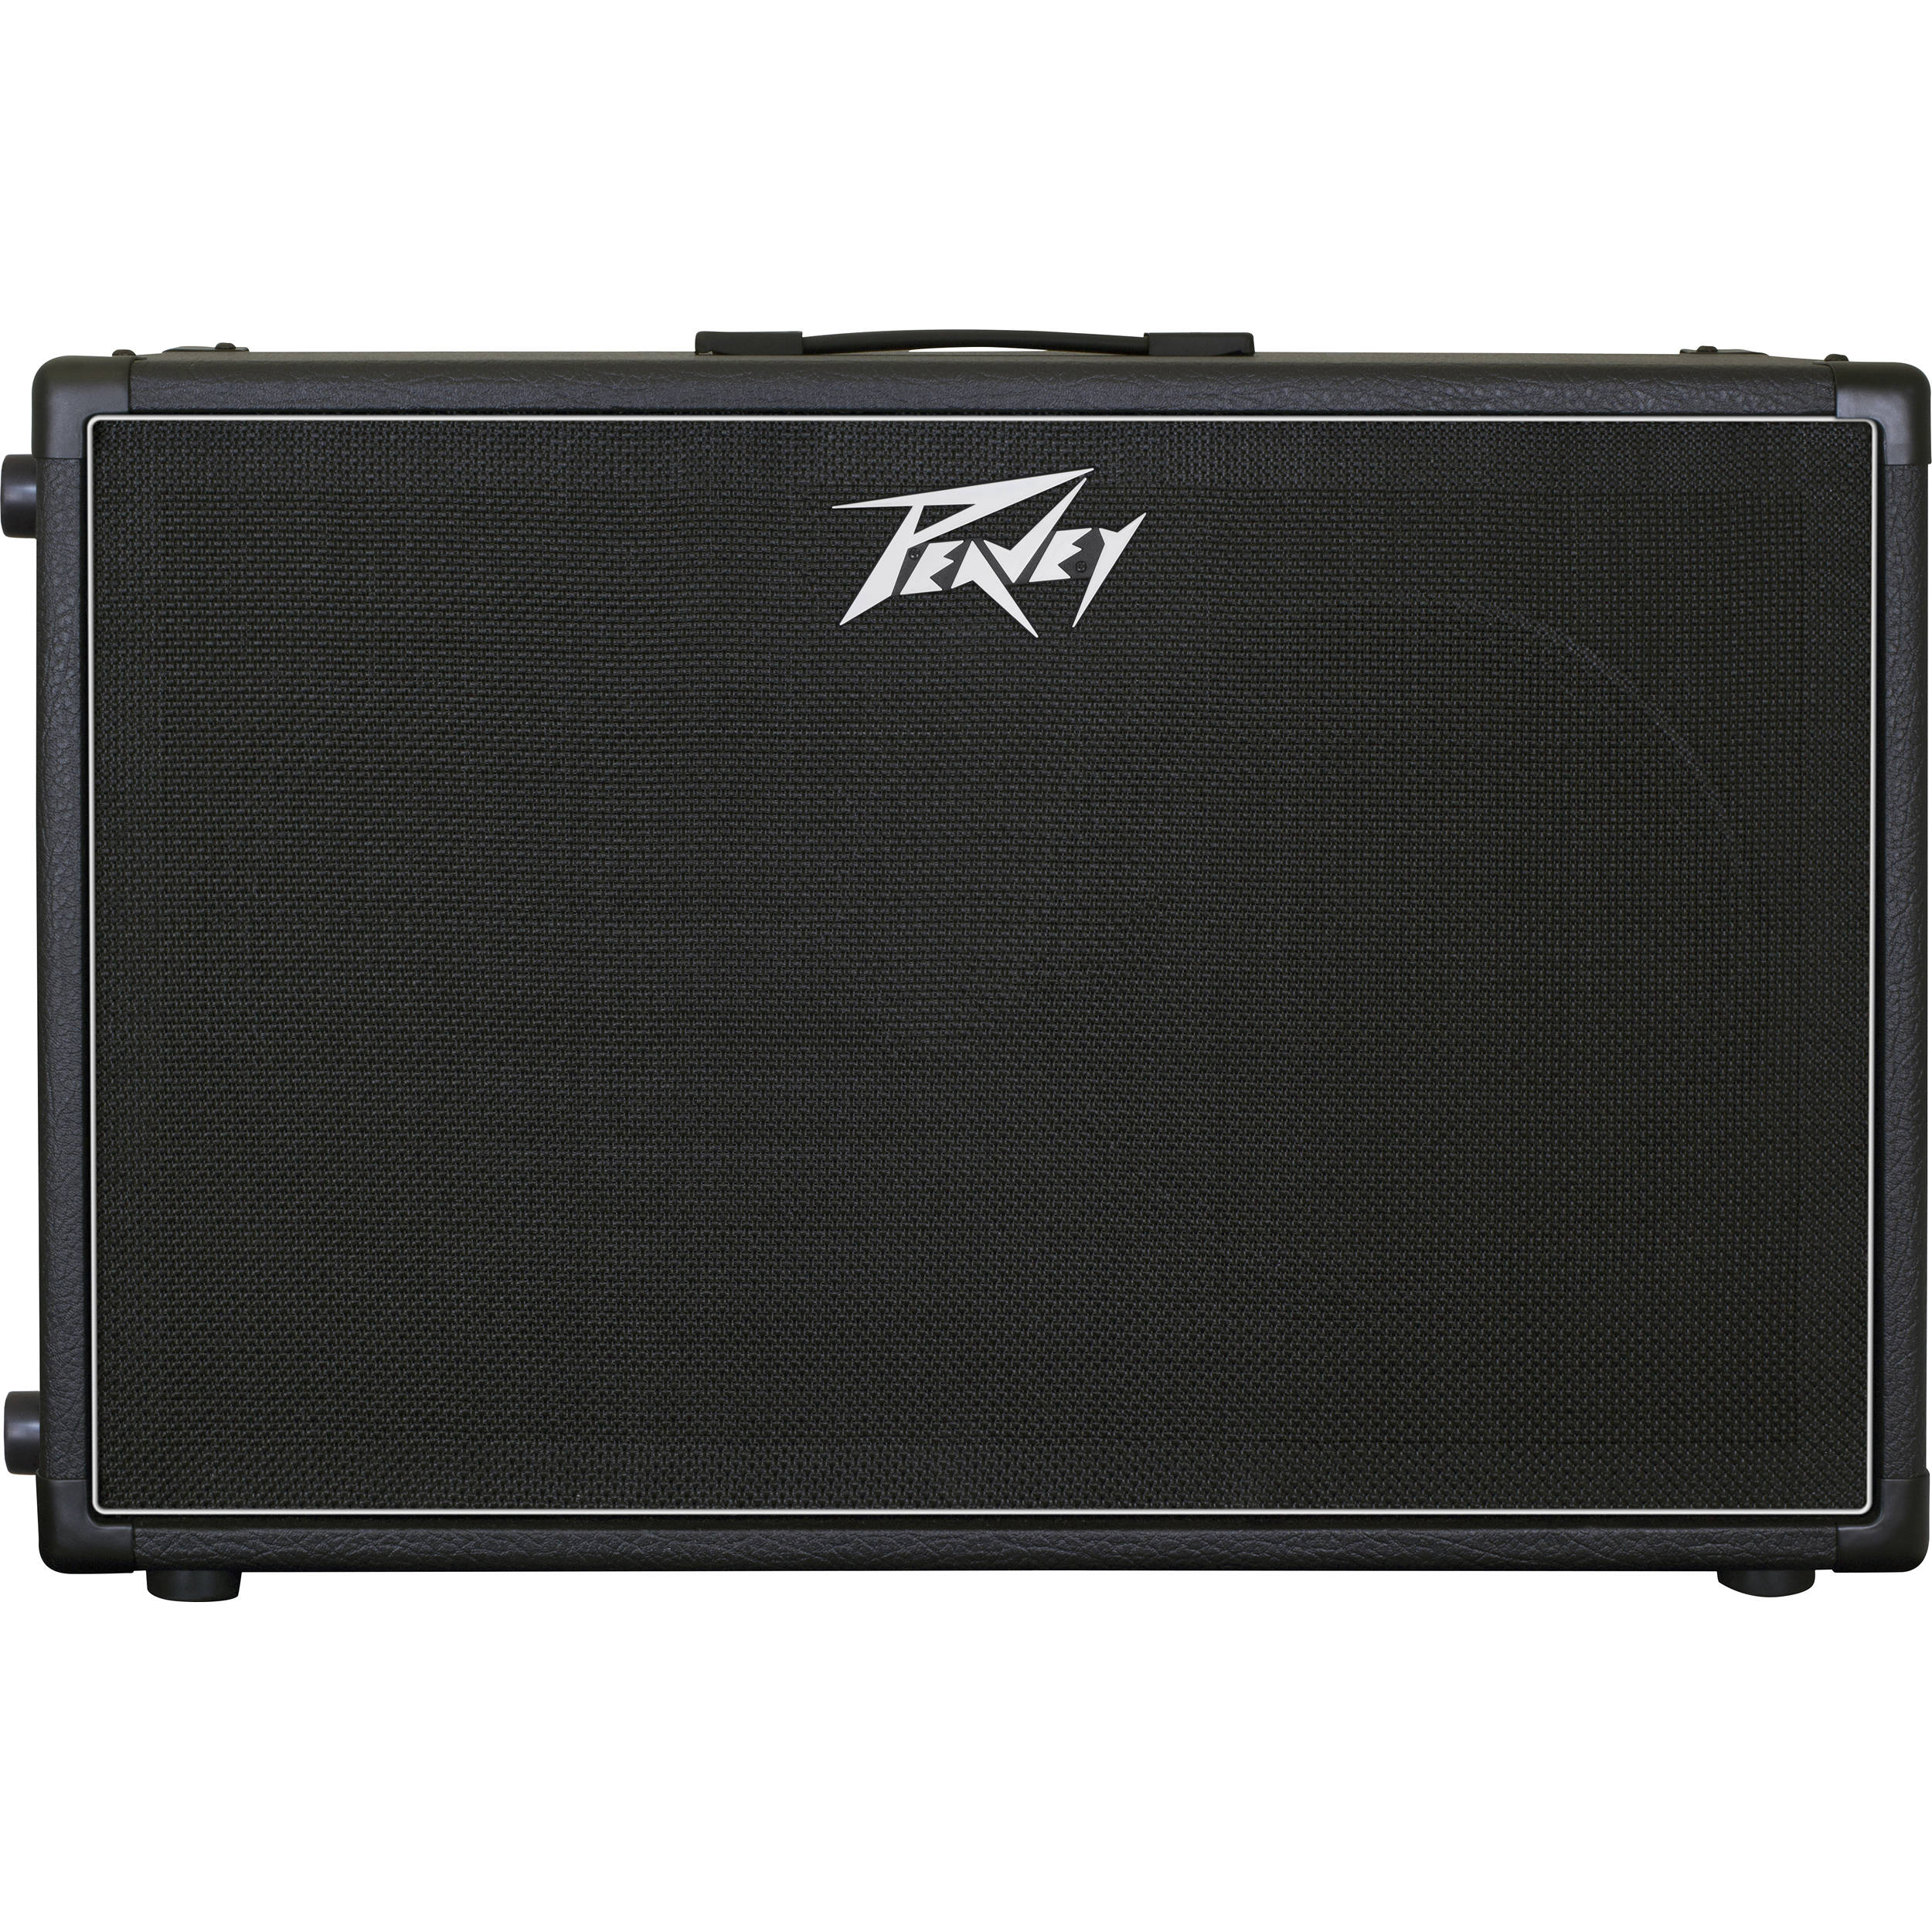 peavey 212 6 electric guitar cab dual 12 speaker cabinet w mic stand cable new ebay. Black Bedroom Furniture Sets. Home Design Ideas